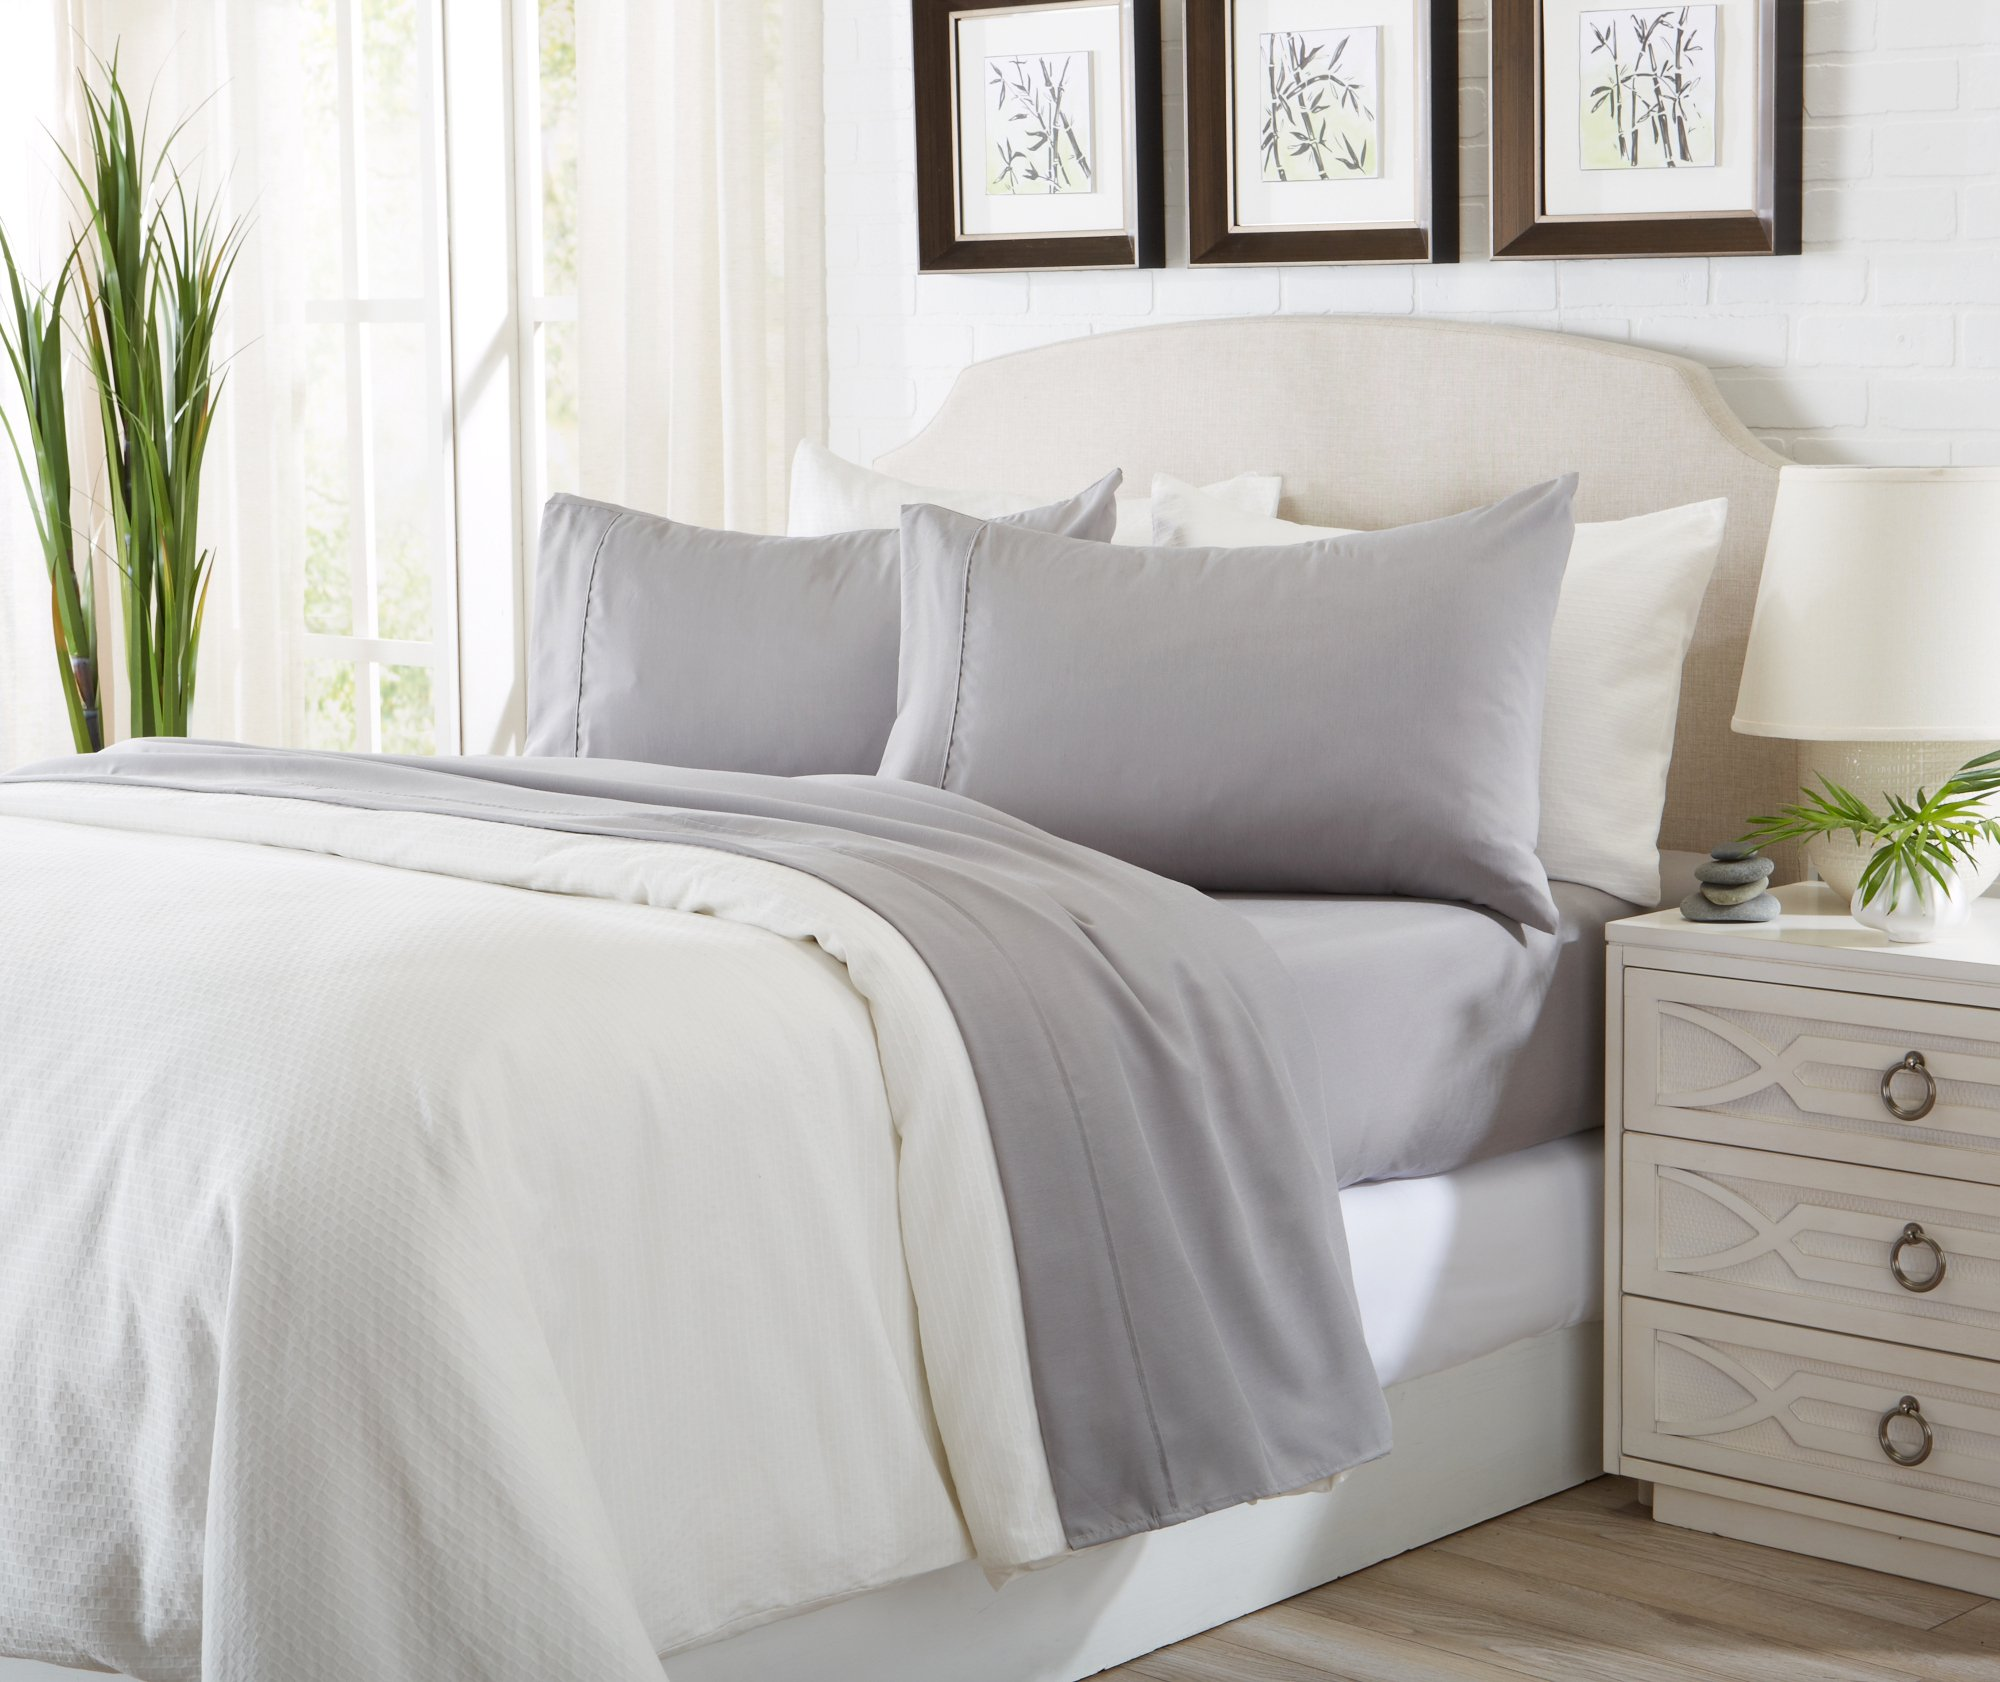 Great Bay Home Luxury Ultra Soft Bamboo Sheet Set. Spa-Quality, Comfortable, All-Season Bed Sheets. By Brand. (King, Paloma Grey) by Great Bay Home (Image #5)